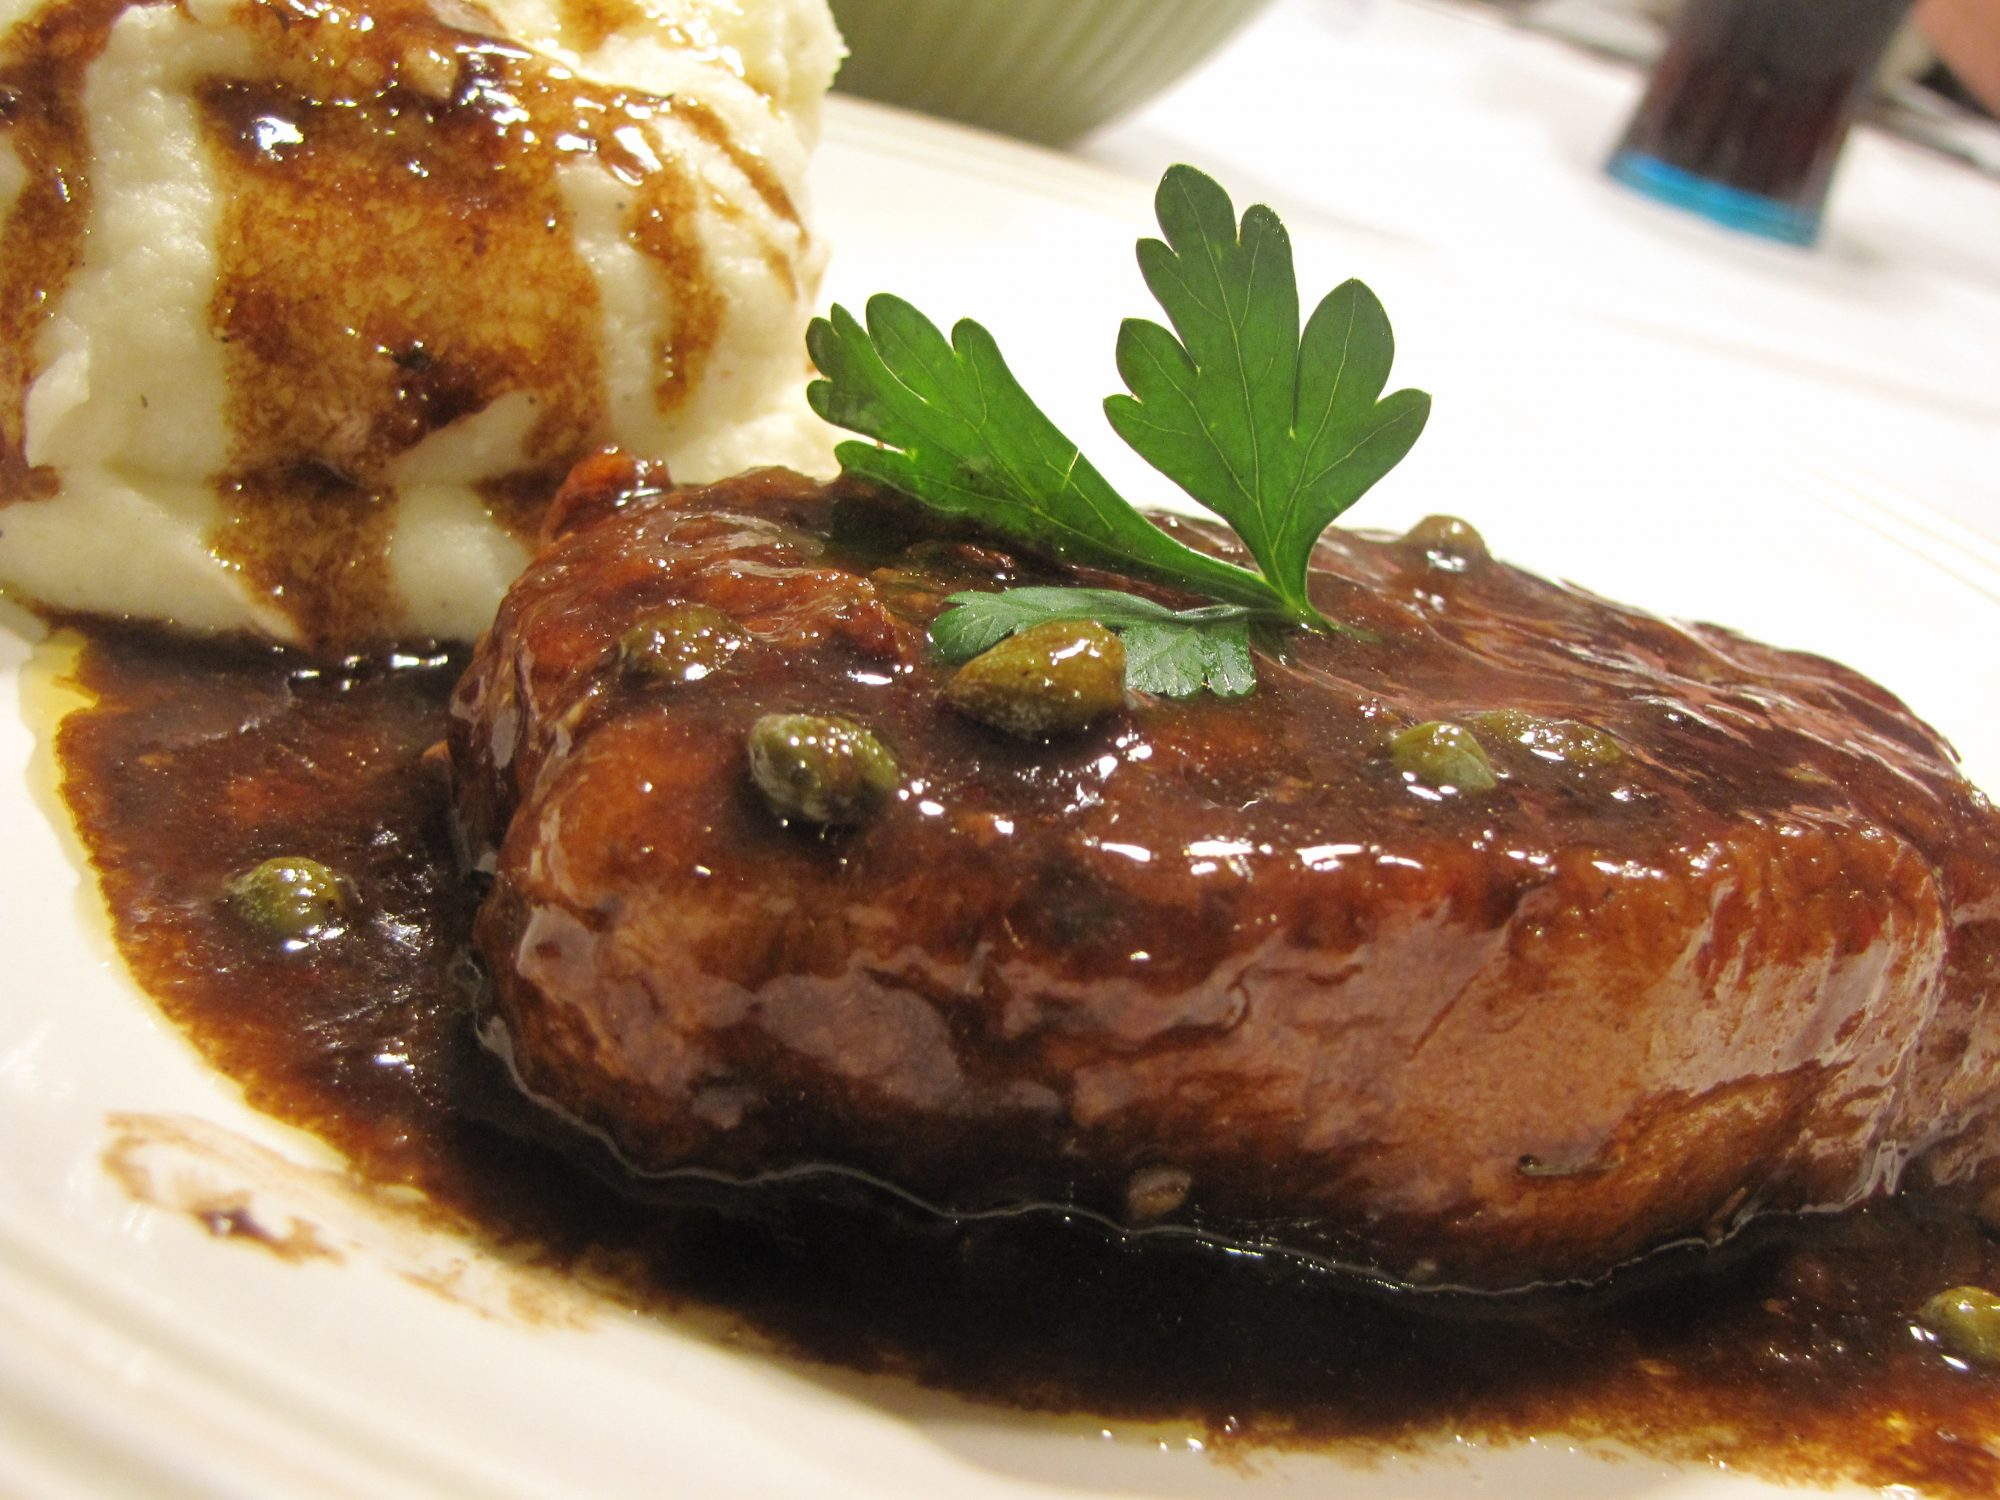 Pork Medallions with Balsamic Vinegar and Capers